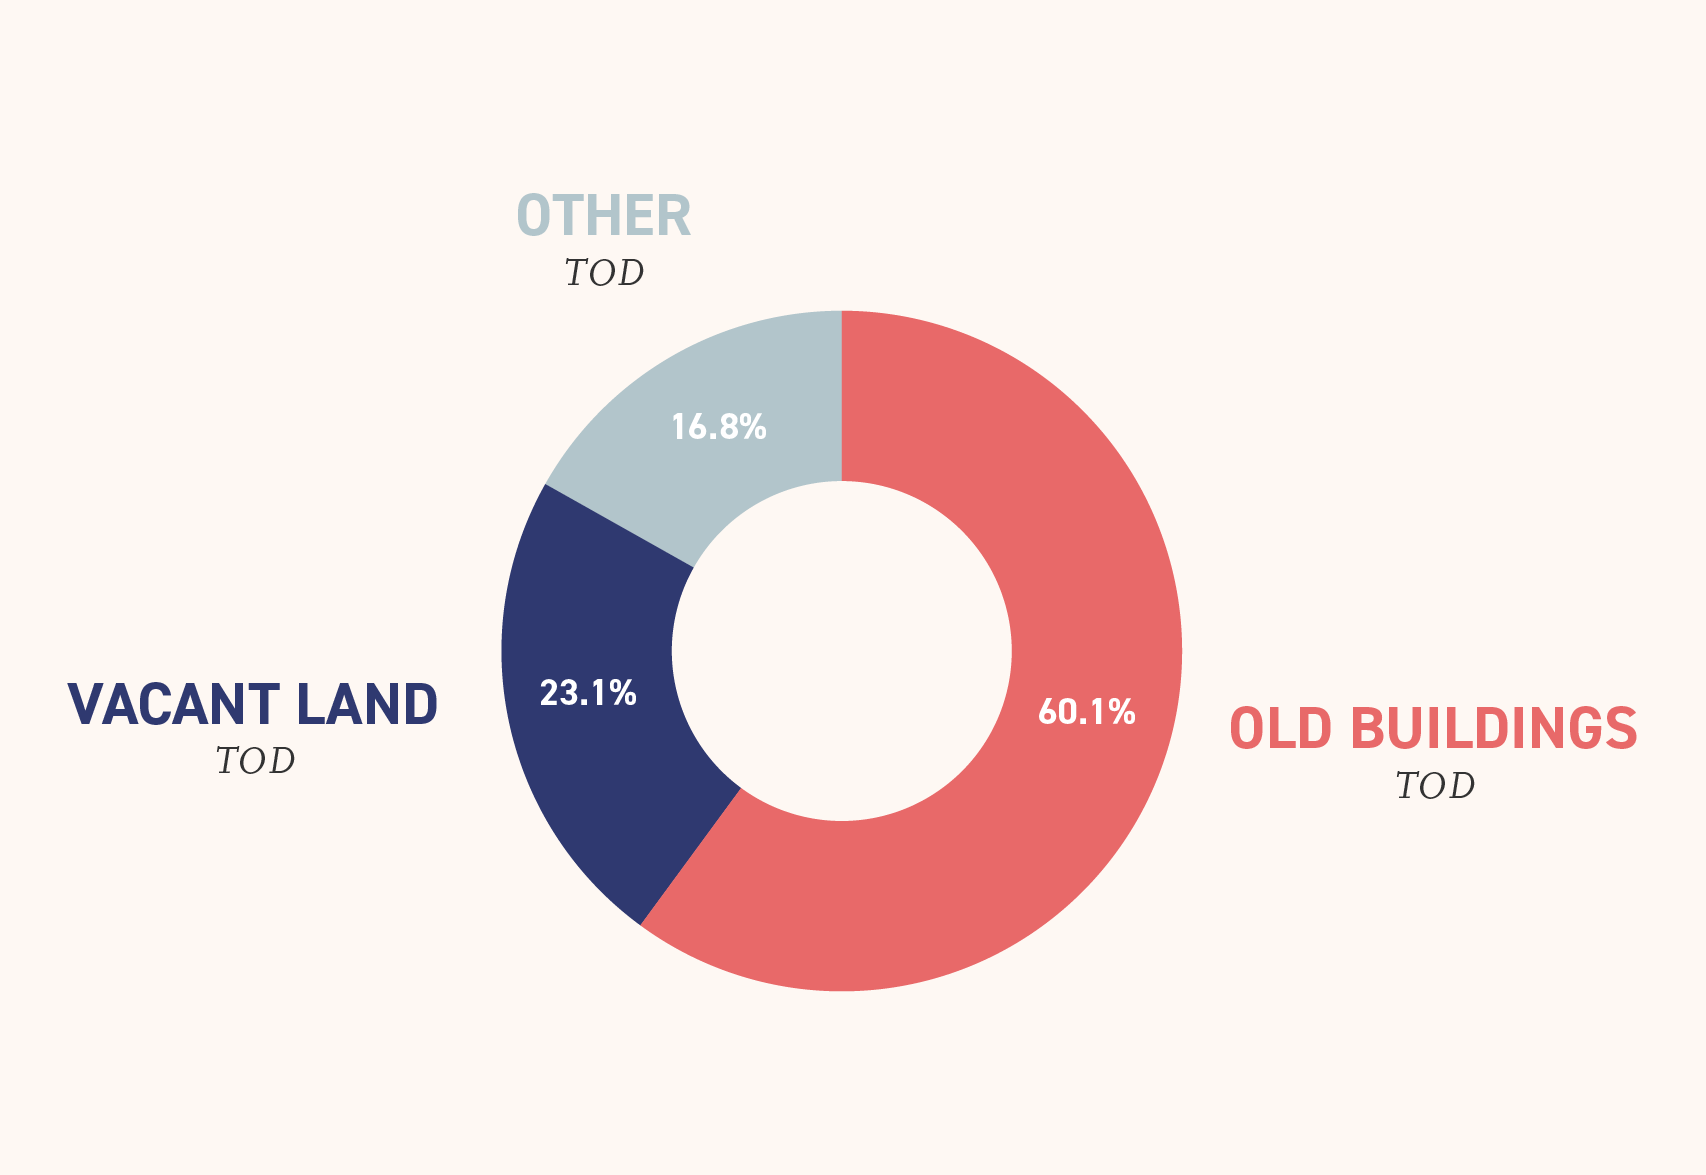 TODs by Land Type